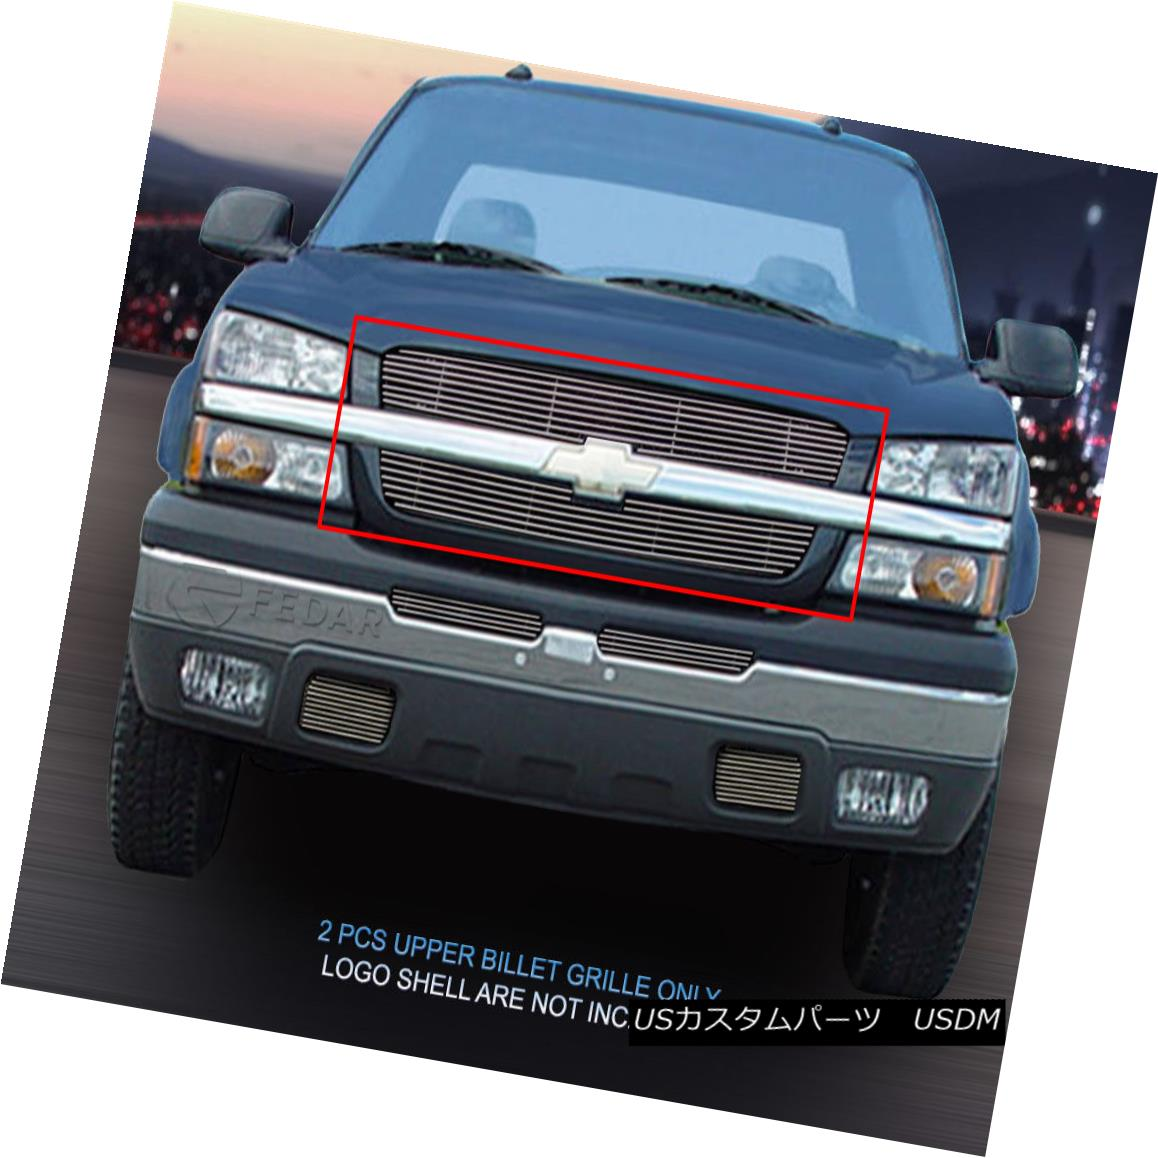 グリル Fedar Fits 03-05 Chevy Silverado/02-06 Avalanche Polished Upper Billet Grille Fedar Fits 03-05 Chevy Silverado / 02-0 6アバランシェ・ポリッシュ・アッパー・ビレット・グリル